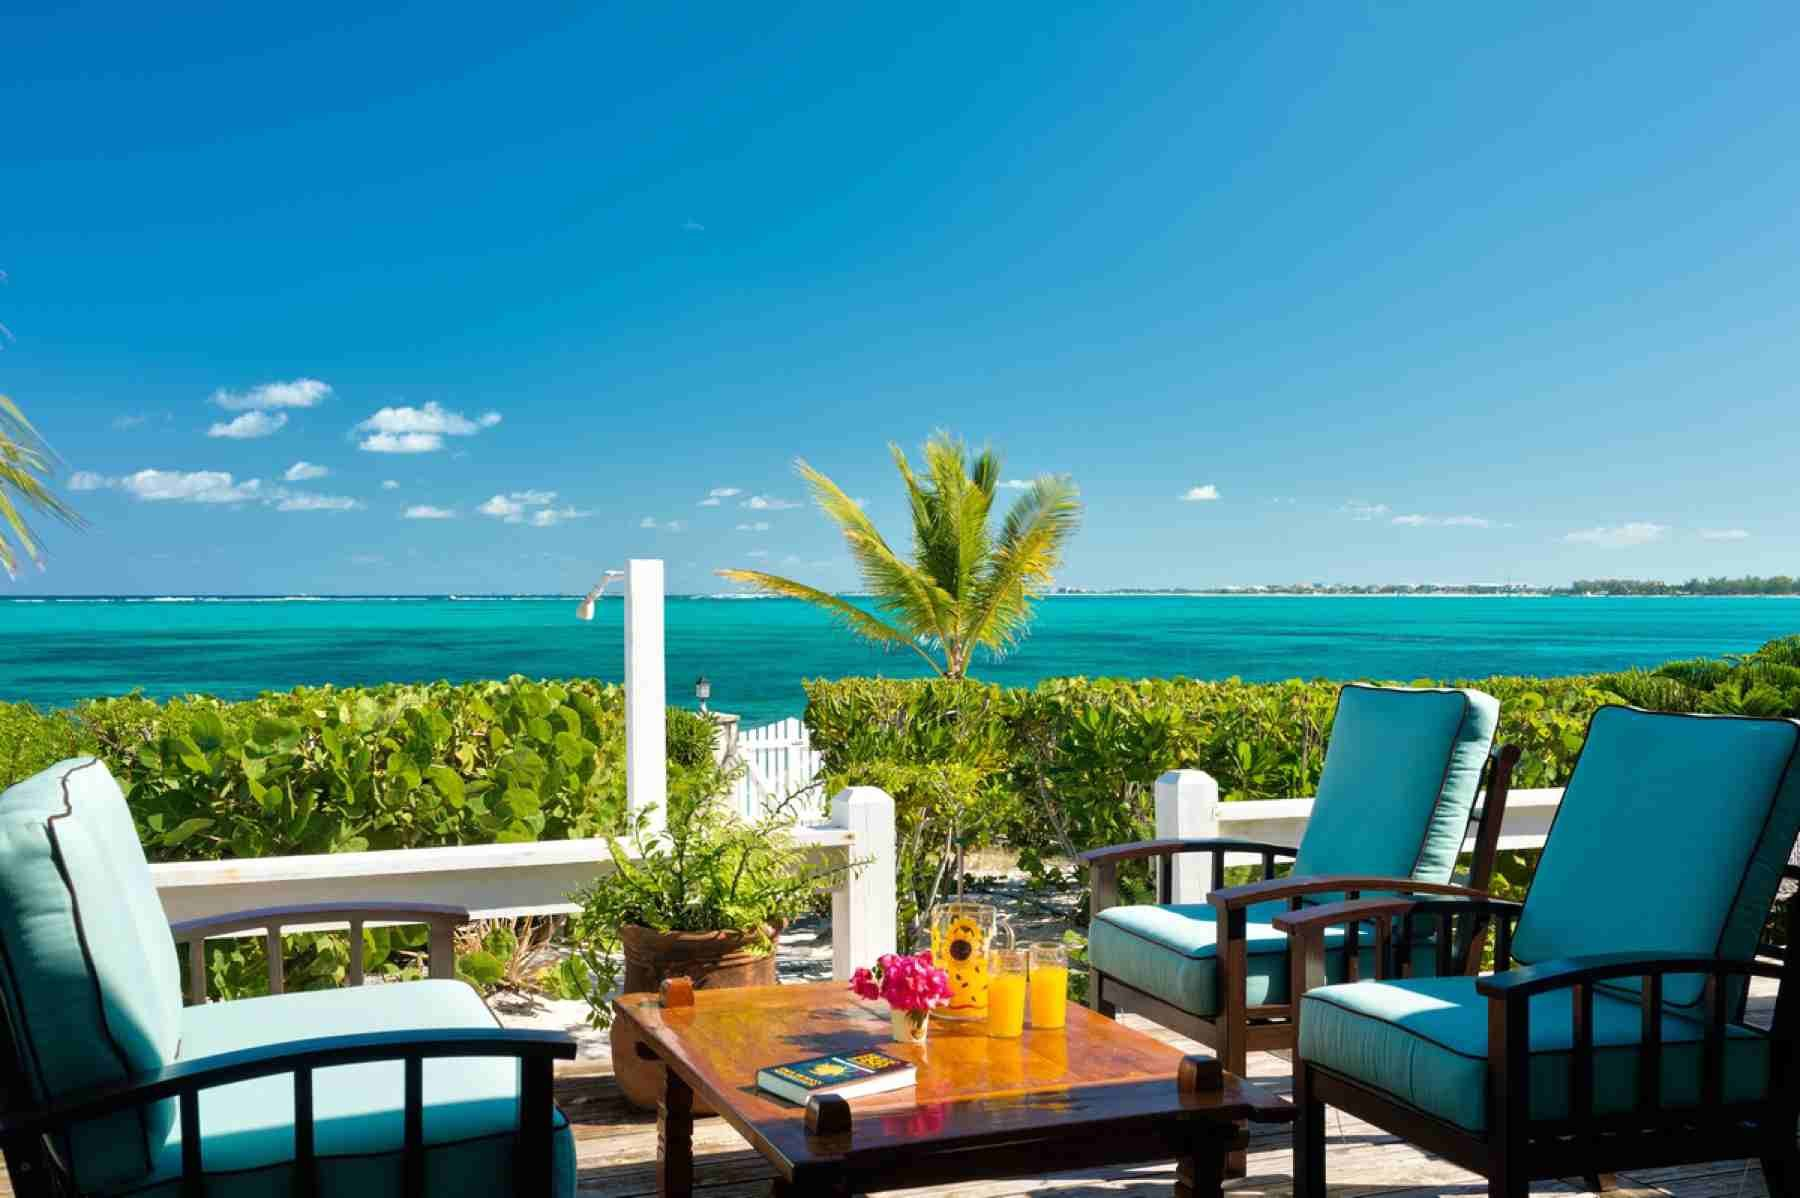 Reef beach house vacation rental villa turks and caicos for Beach house construction cost